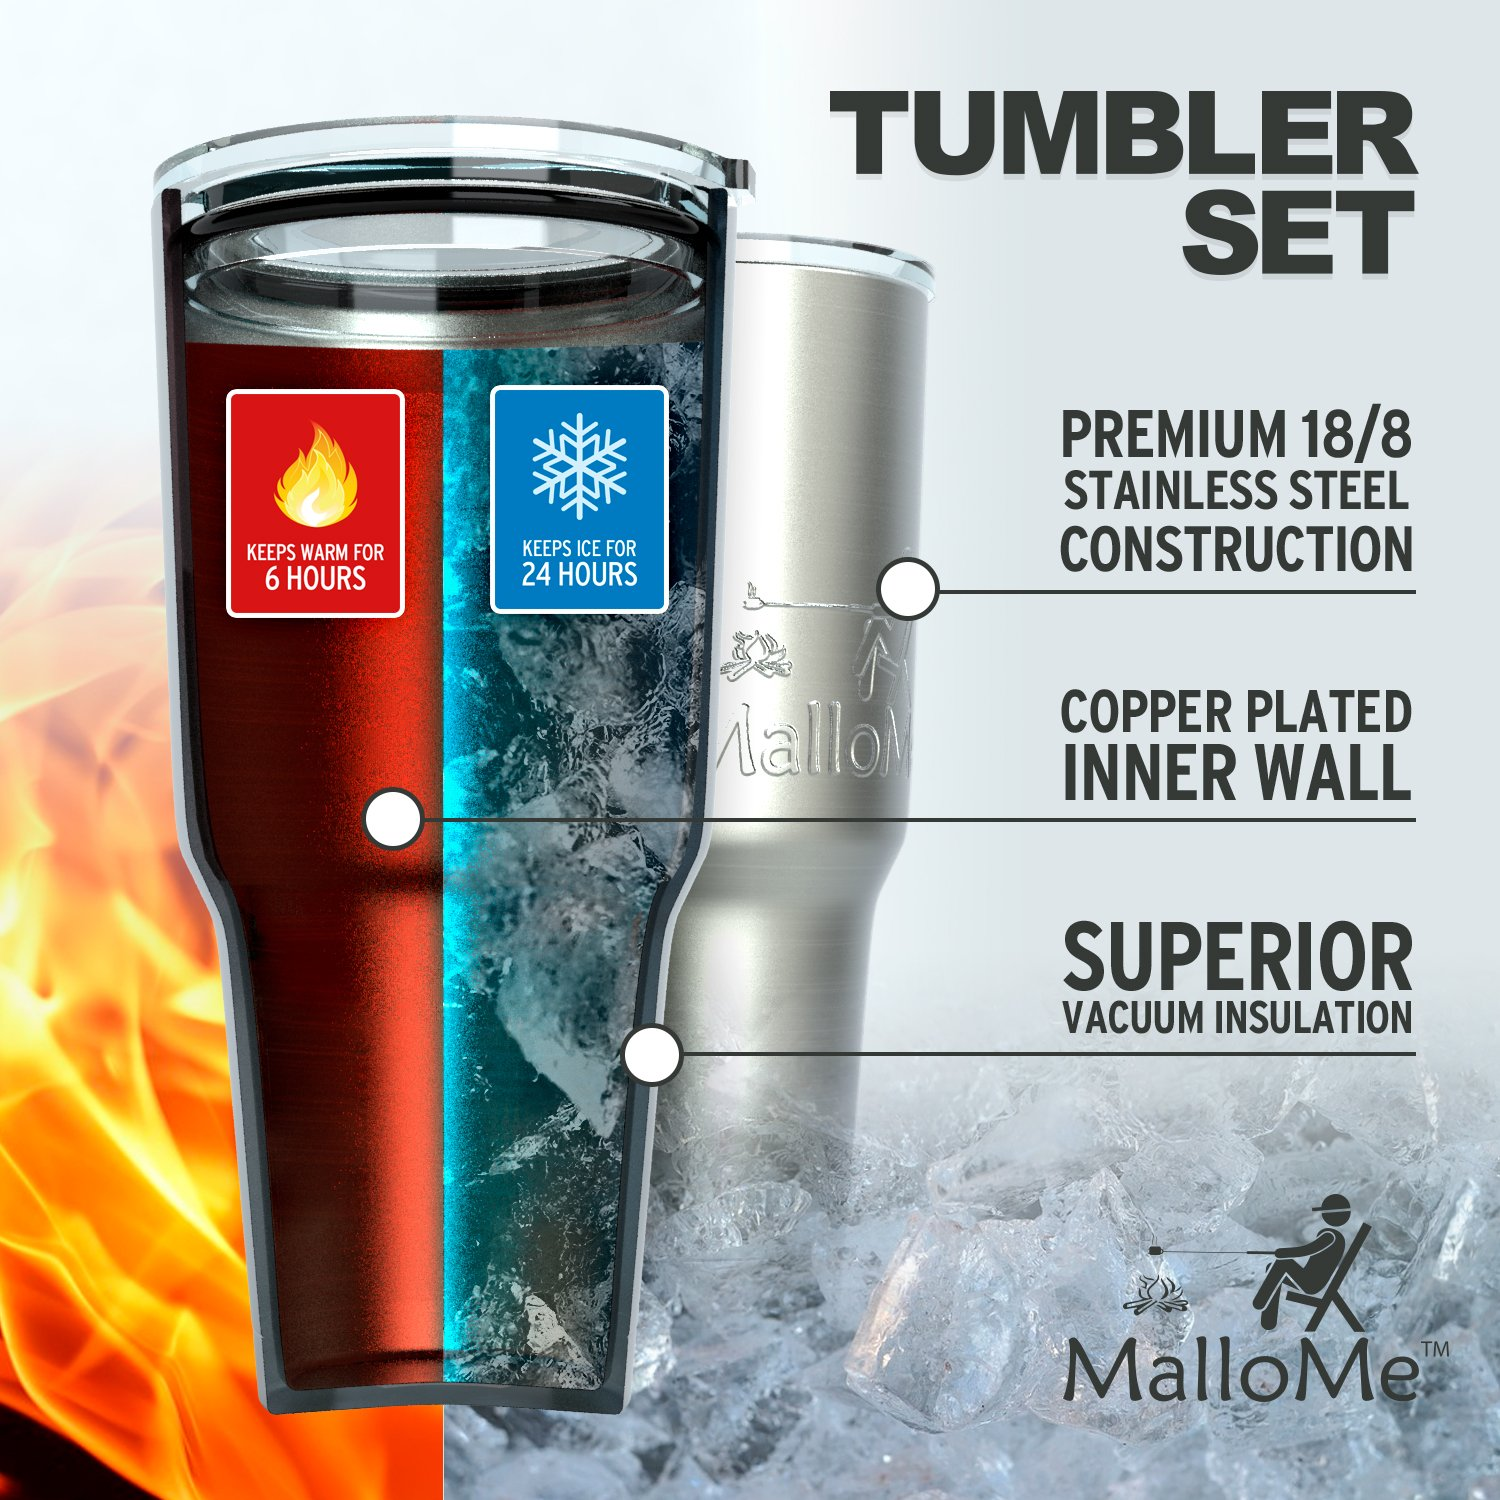 MalloMe Tumbler 30 oz. Double Wall Stainless Steel Vacuum Insulated - Travel Mug [Crystal Clear Lid] Water Coffee Cup [Straw Included] For Home,Office,School - Works Great for Ice Drink, Hot Beverage by MalloMe (Image #2)